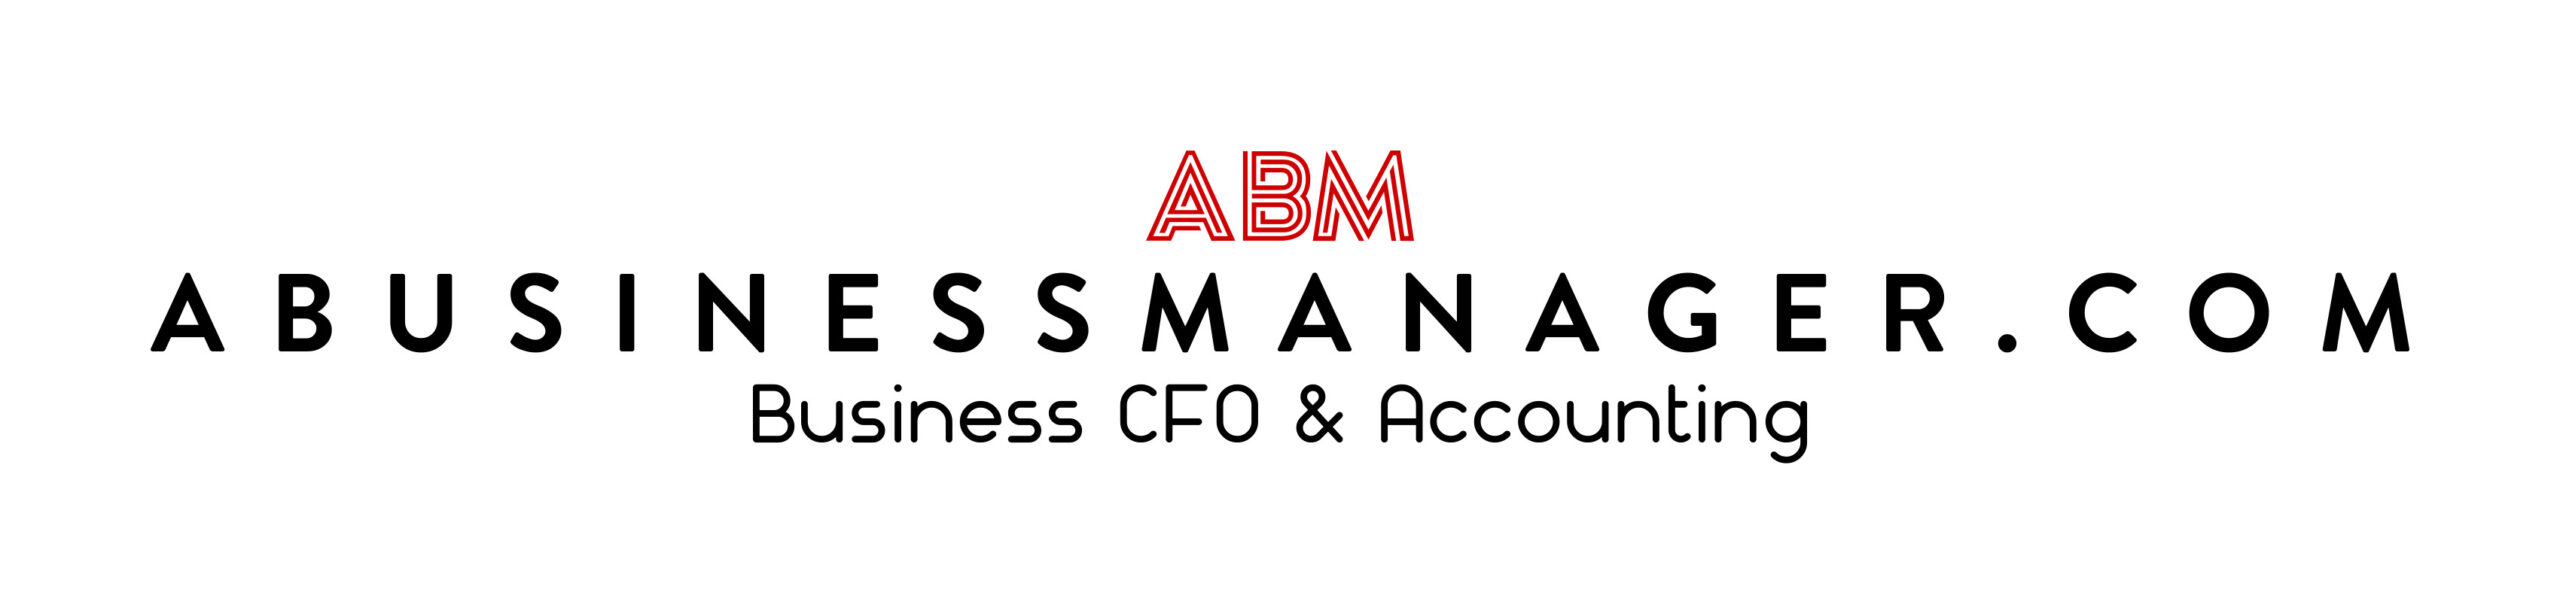 ABusinessManager.com Accounting, Bookkeeping and CFO Services for Business